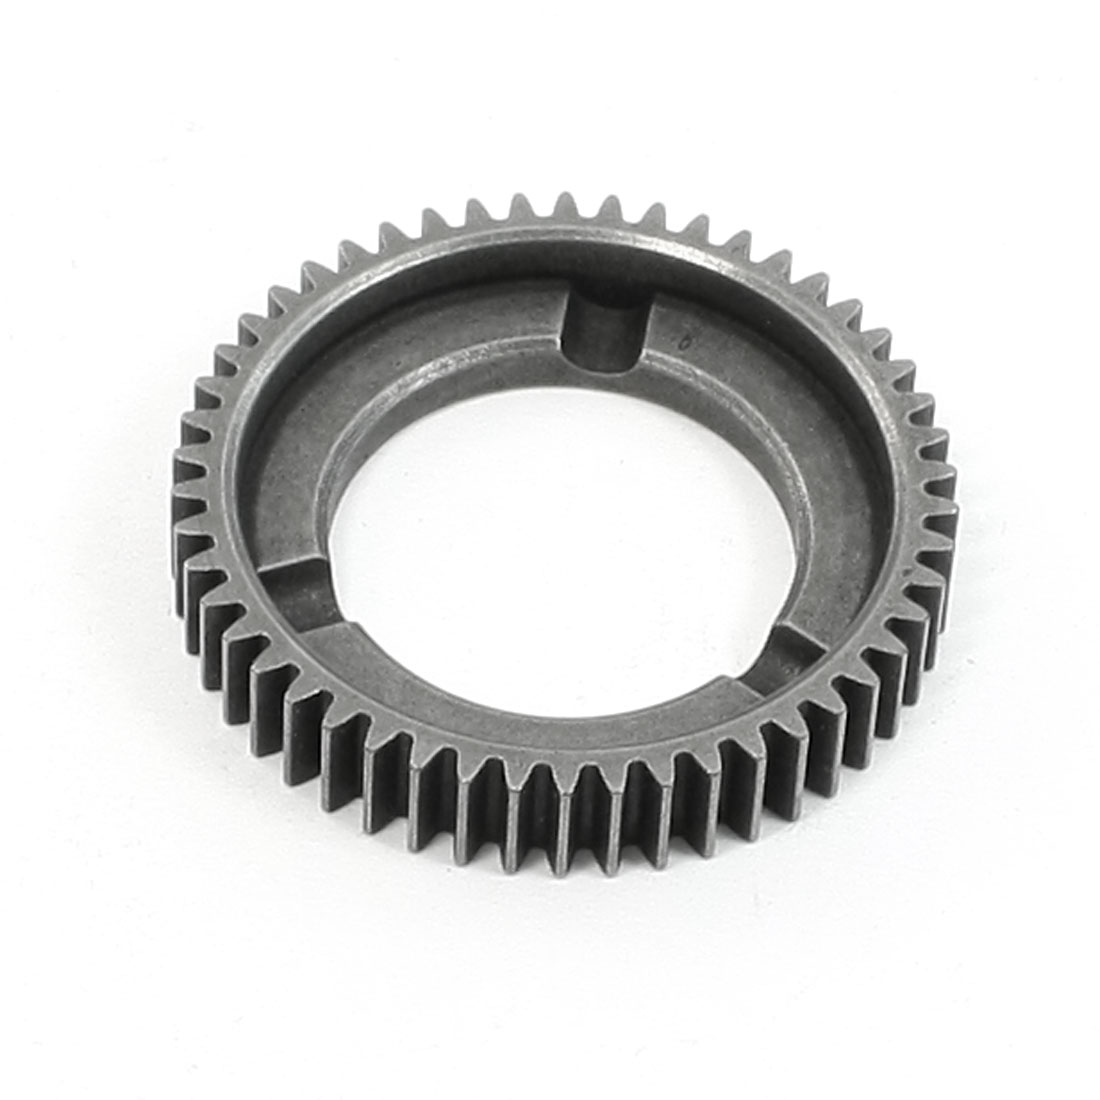 52mm OD 31mm Inner Diameter 50 Teeth Gear Wheel for Bosch 24 Hammer